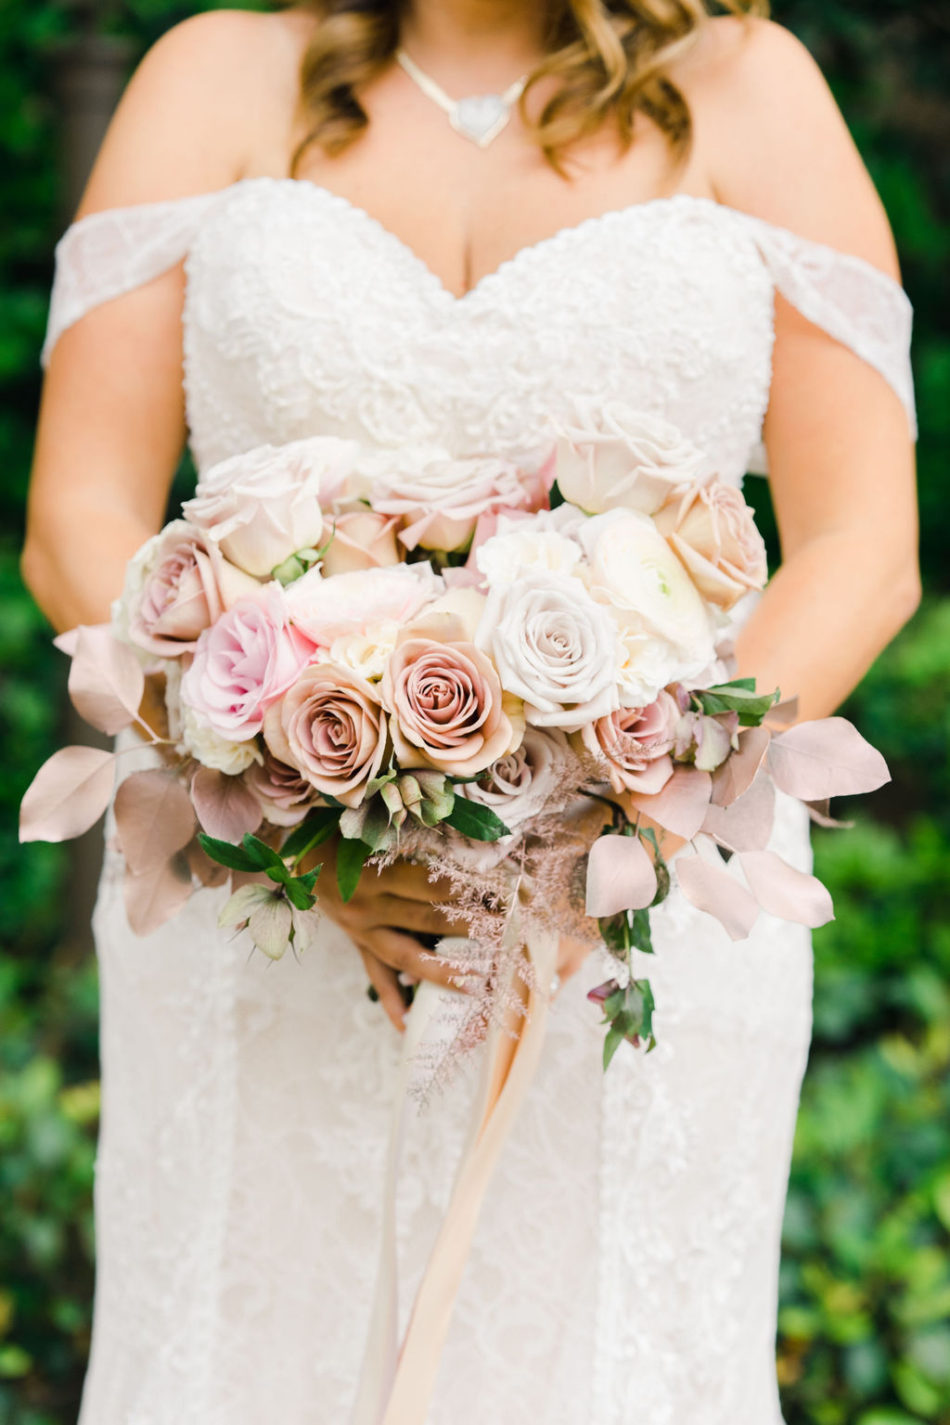 floral design, florist, wedding florist, wedding flowers, orange county weddings, orange county wedding florist, orange county florist, orange county floral design, flowers by cina, blush bridal bouquet, pastel bridal bouquet, pastel blooms